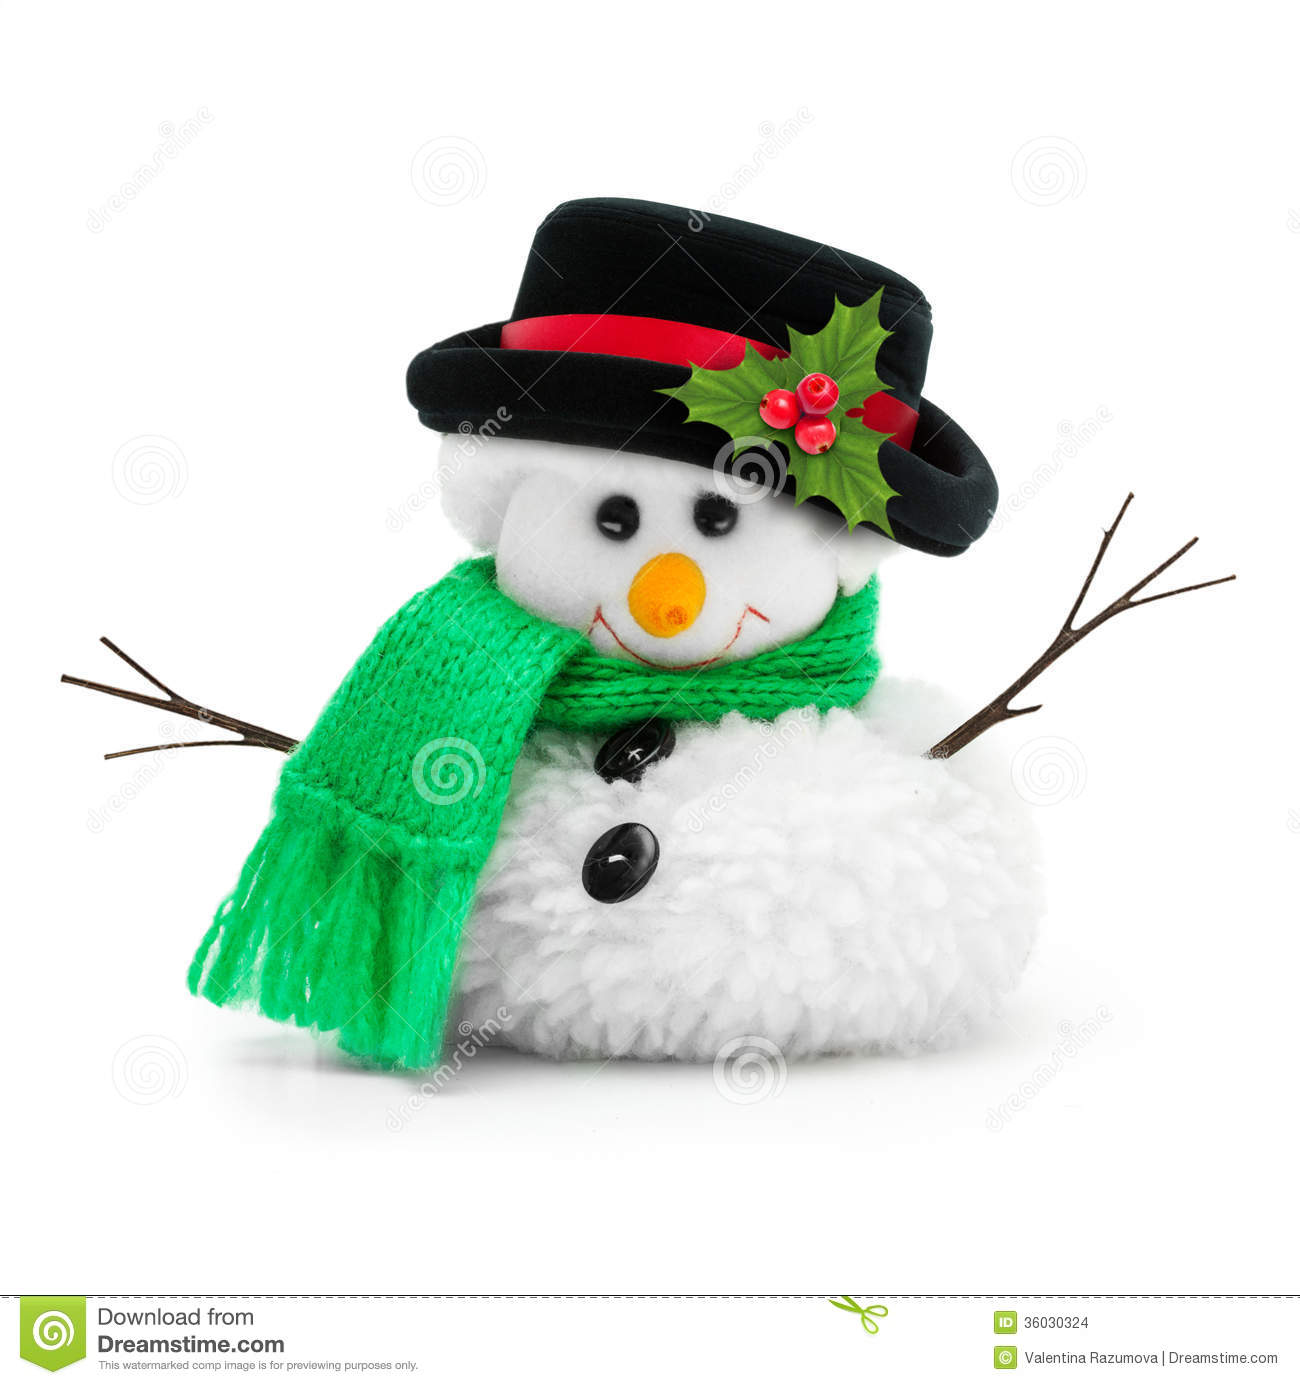 Snowman in black hat isolated on white background.